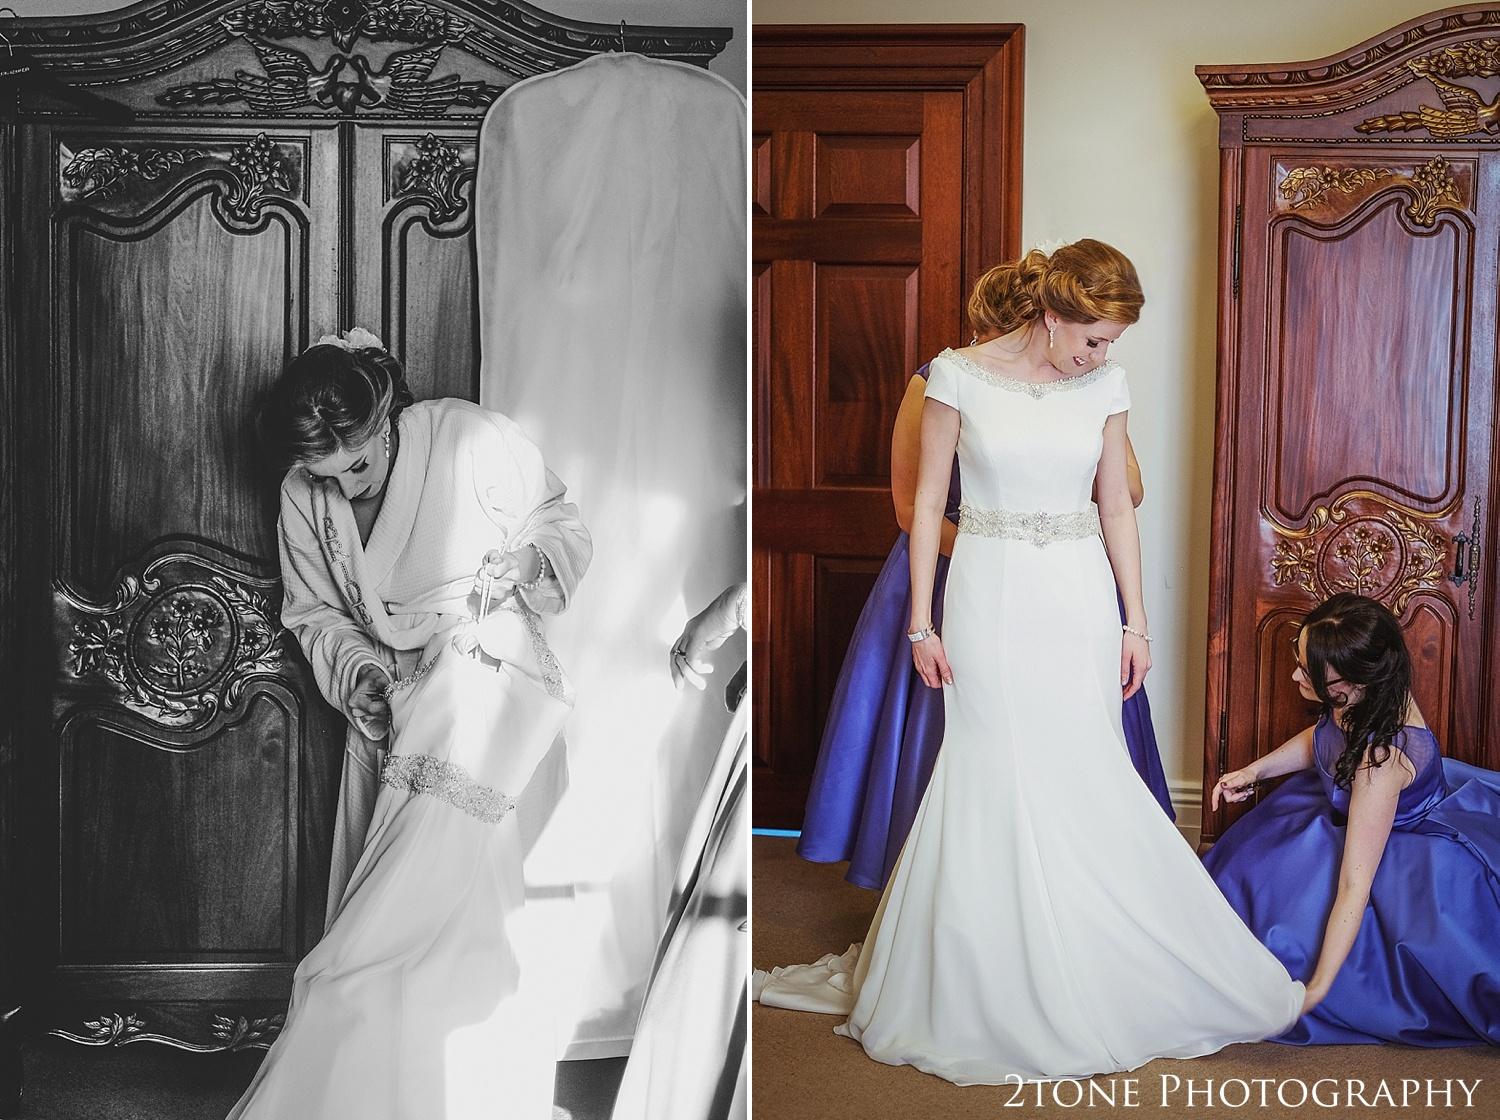 Doxford Hall wedding photographer 006.jpg